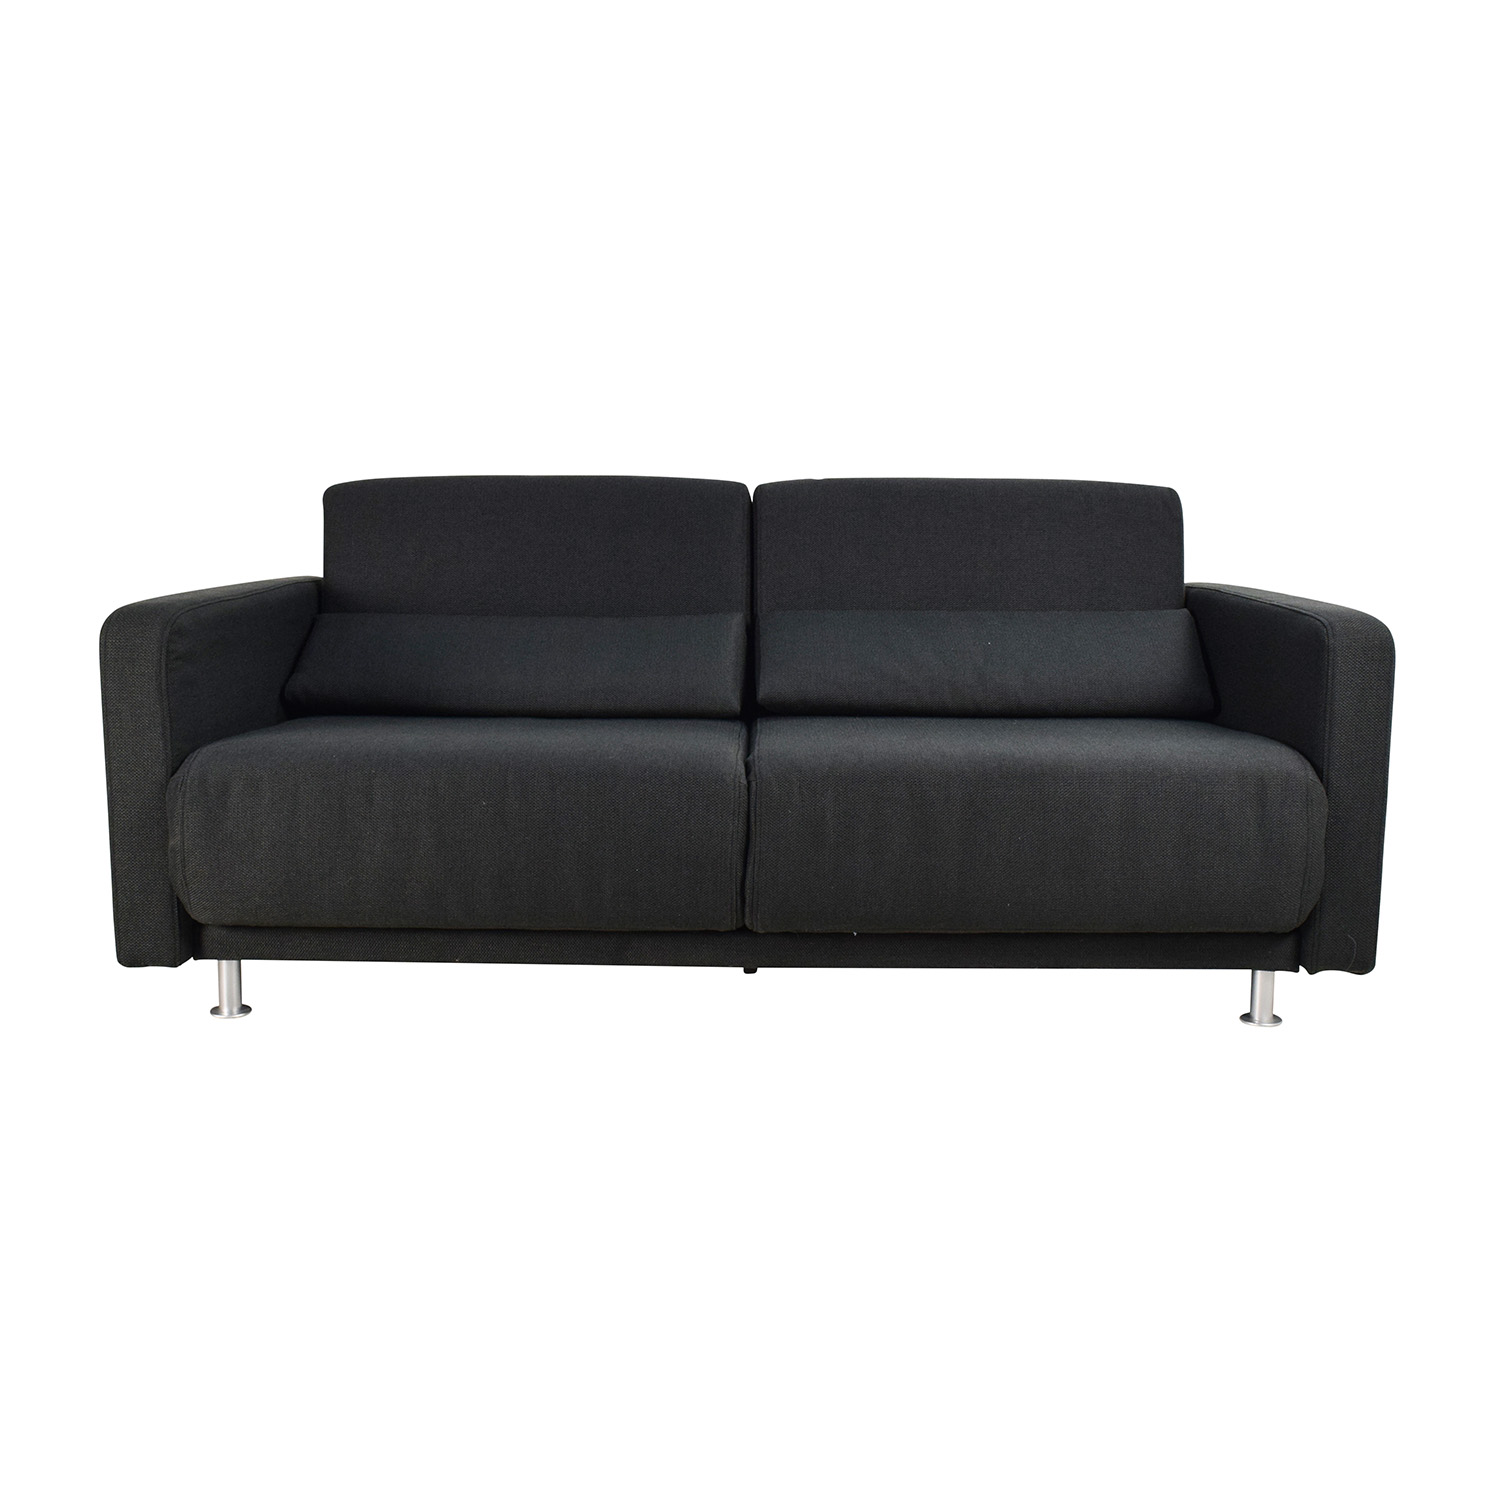 Boconcept Kyoto Sofa Bed Review Review Home Co